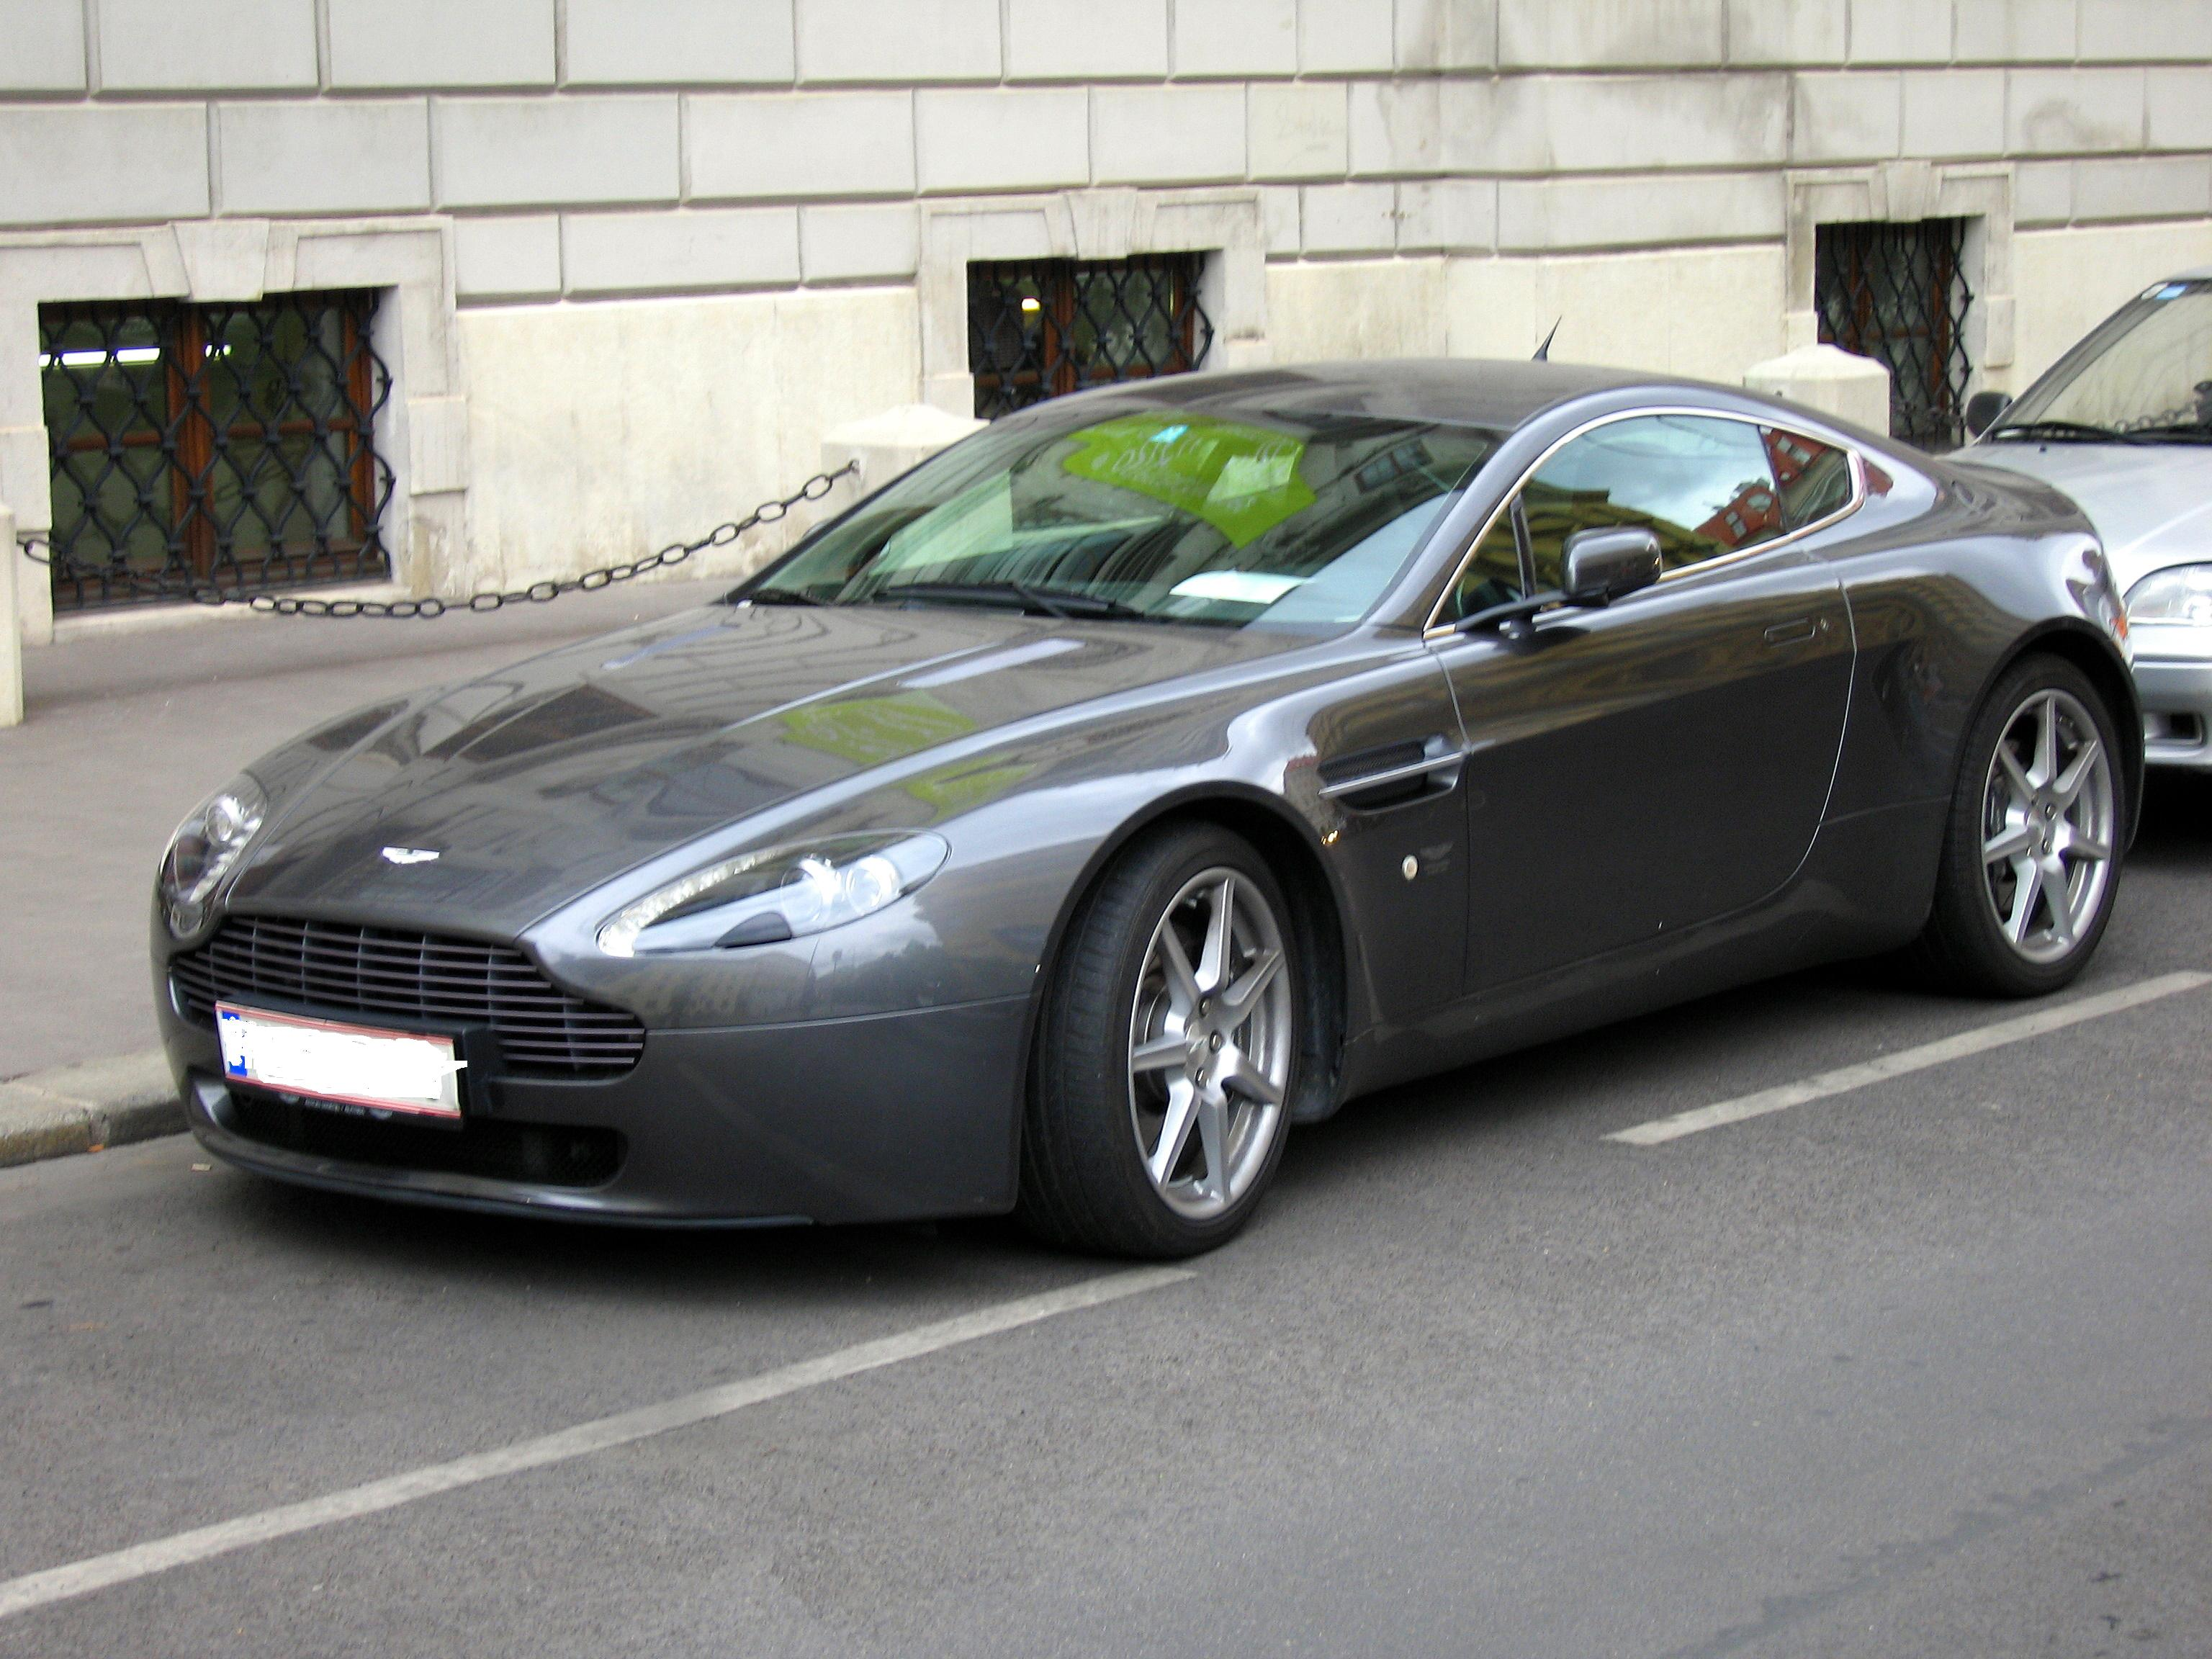 Aston Martin Vantage V8 Free Wallpaper For Android